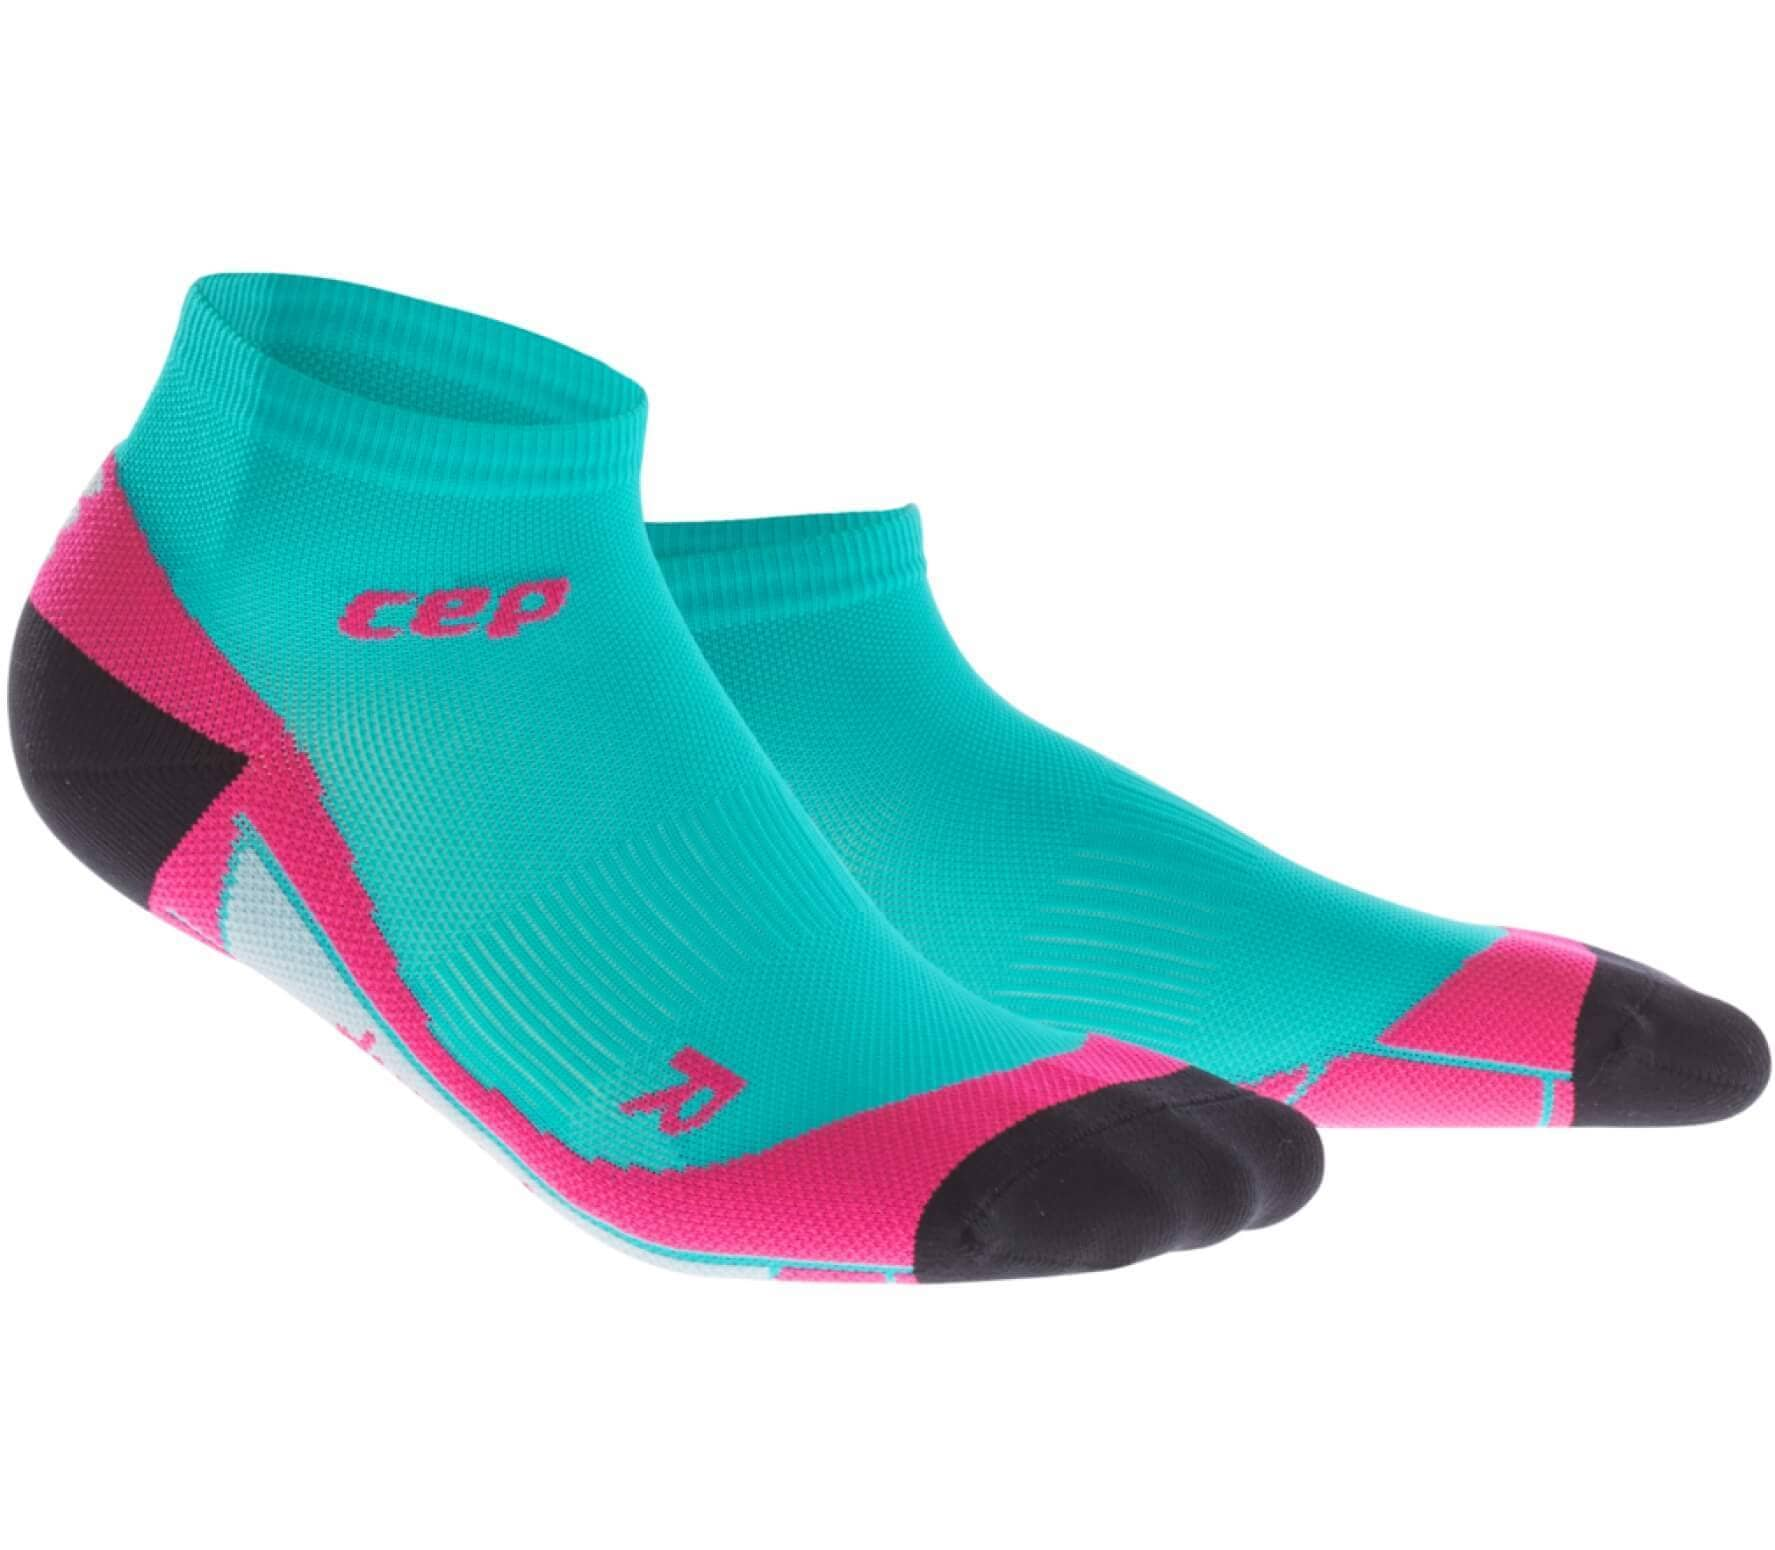 CEP - Low Cut Damen Laufsocken (grün/pink) - IV